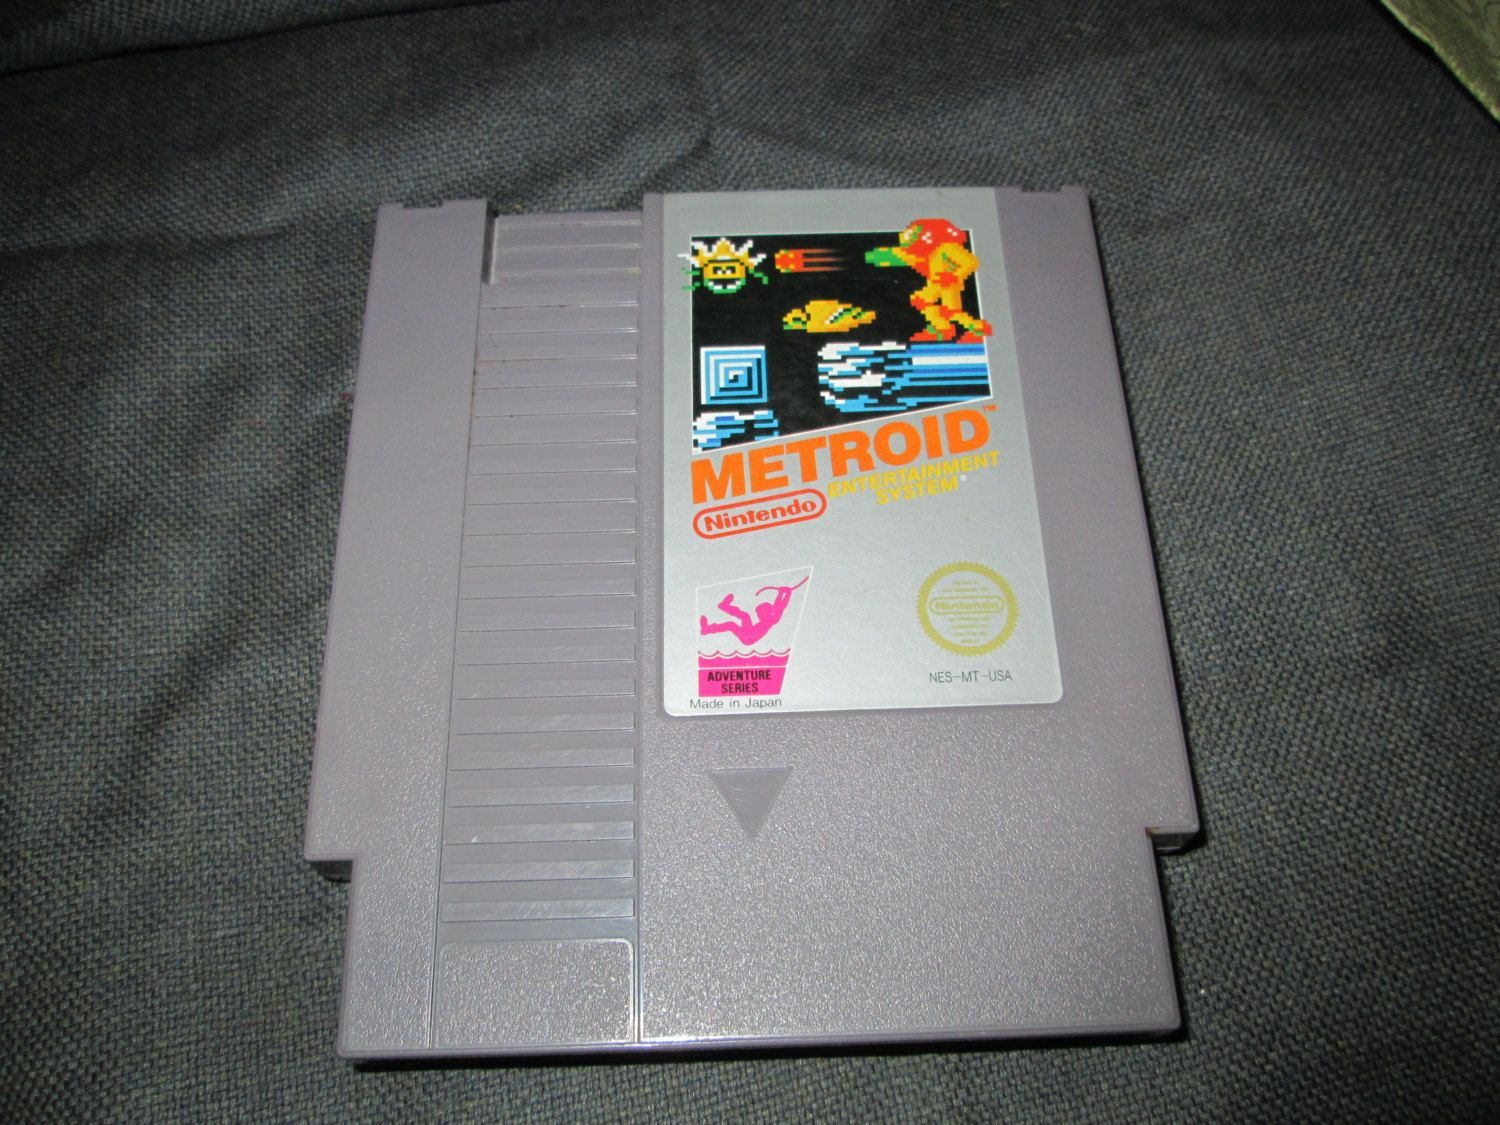 Nintendo Video Game - Metroid, NES  in Good, Used, Vintage Condition. Classic, Retro, Original NES game cartridge. by FriendsRetro on Etsy